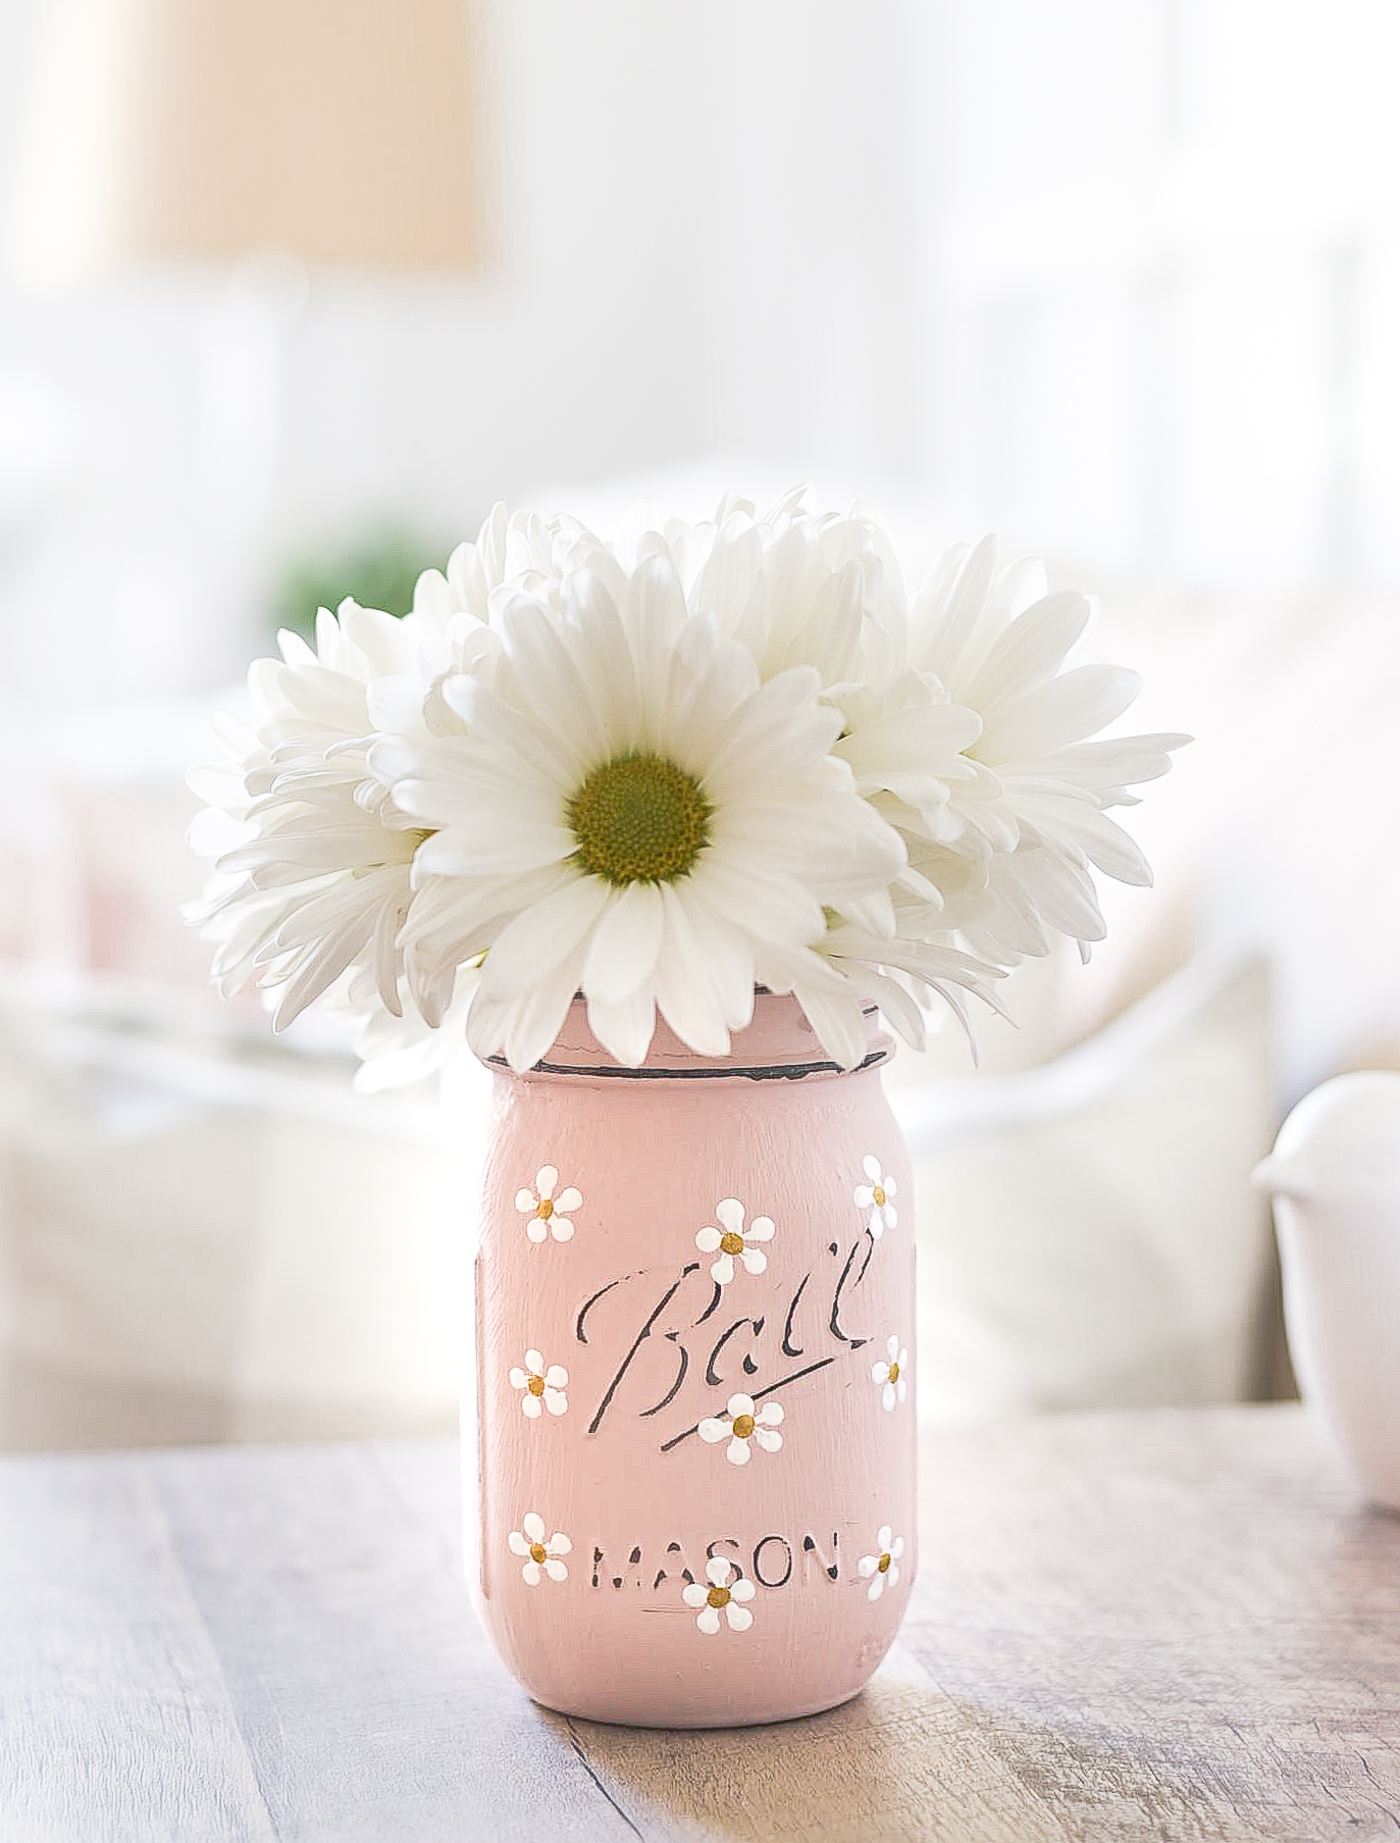 Painted daisy mason jar. How to paint daisies on mason jars. Blush pink painted mason jar with daisies. Mason jar crafts for spring, summer.